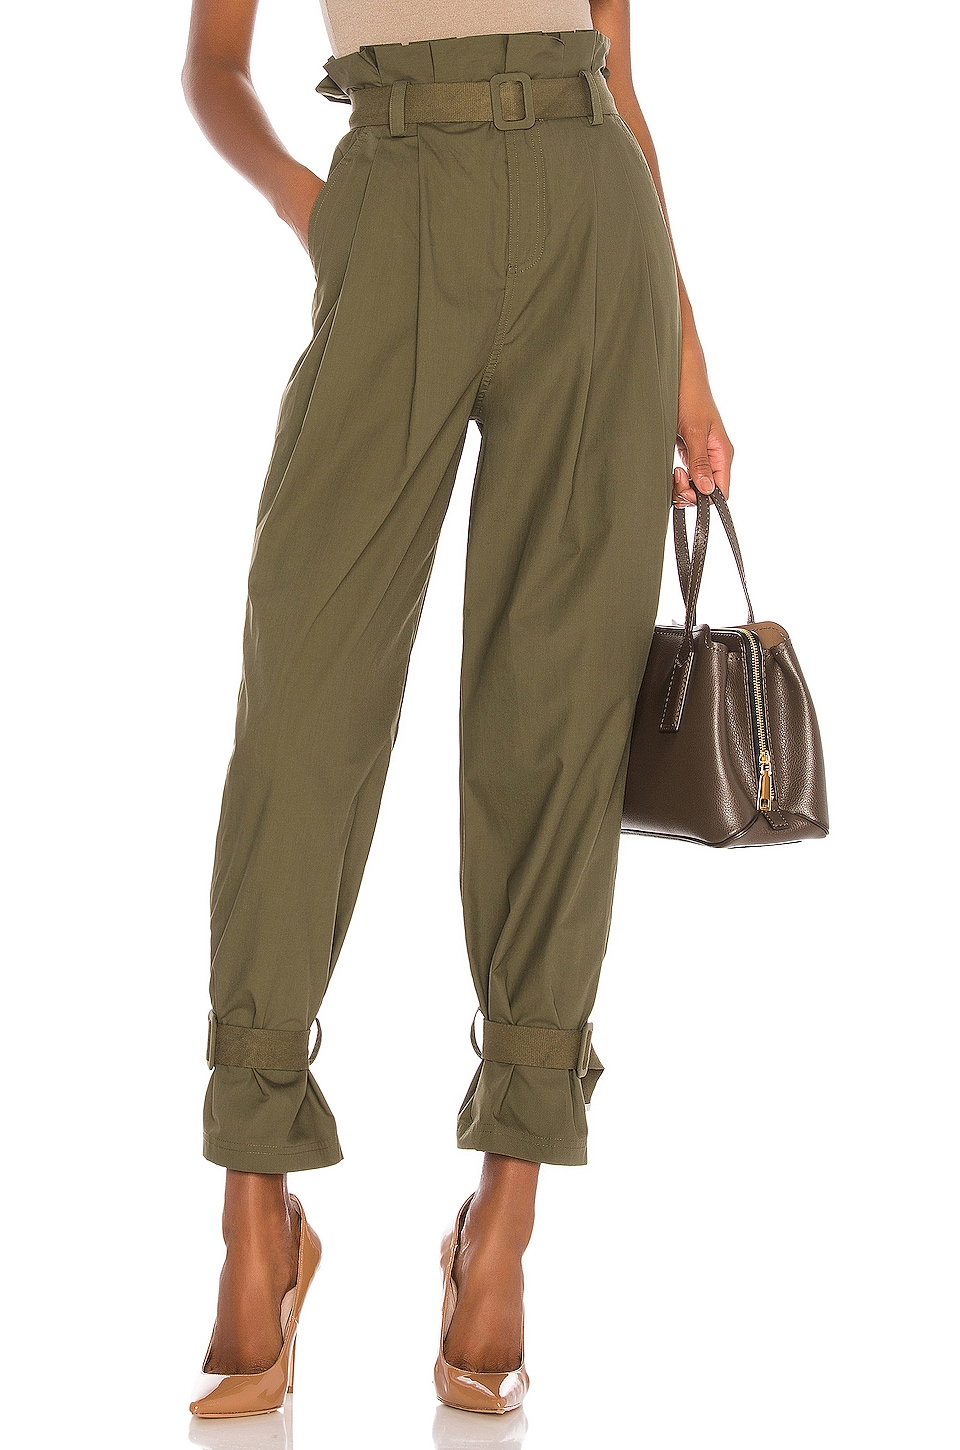 L'Academie The Virgil Pant in Olive Green